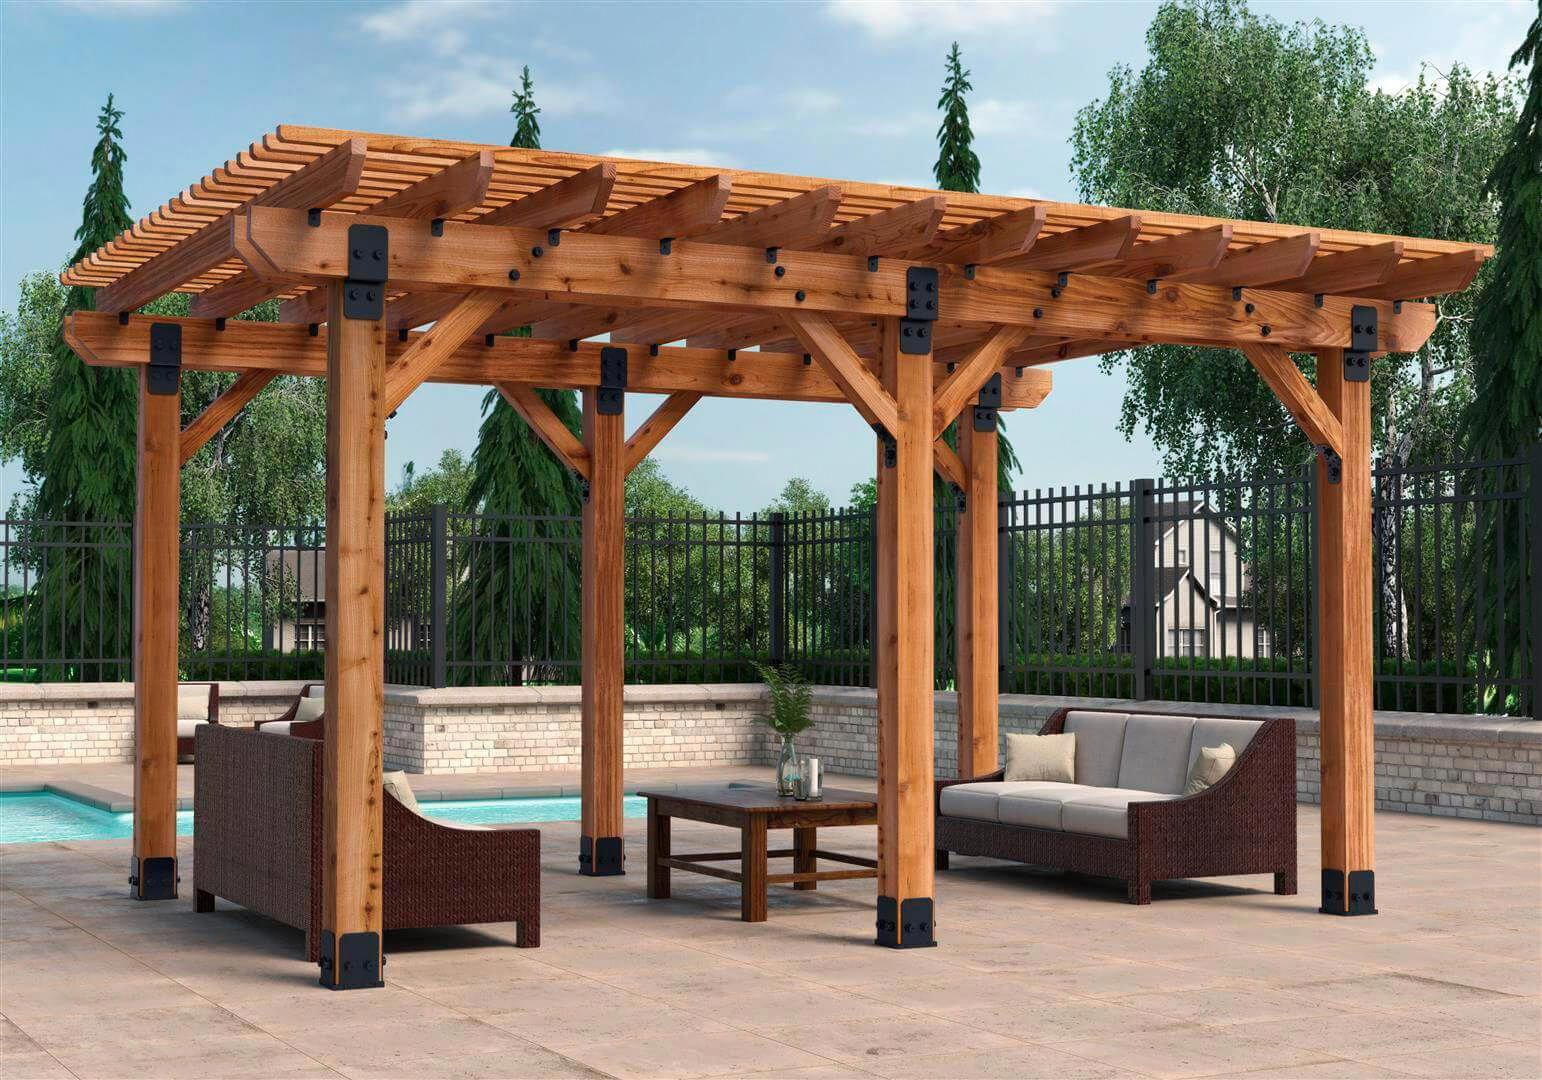 Where To Buy Pergola Kits #PergolaKitsAmazon #PergolaInFrontOfHouse - Where To Buy Pergola Kits #PergolaKitsAmazon #PergolaInFrontOfHouse